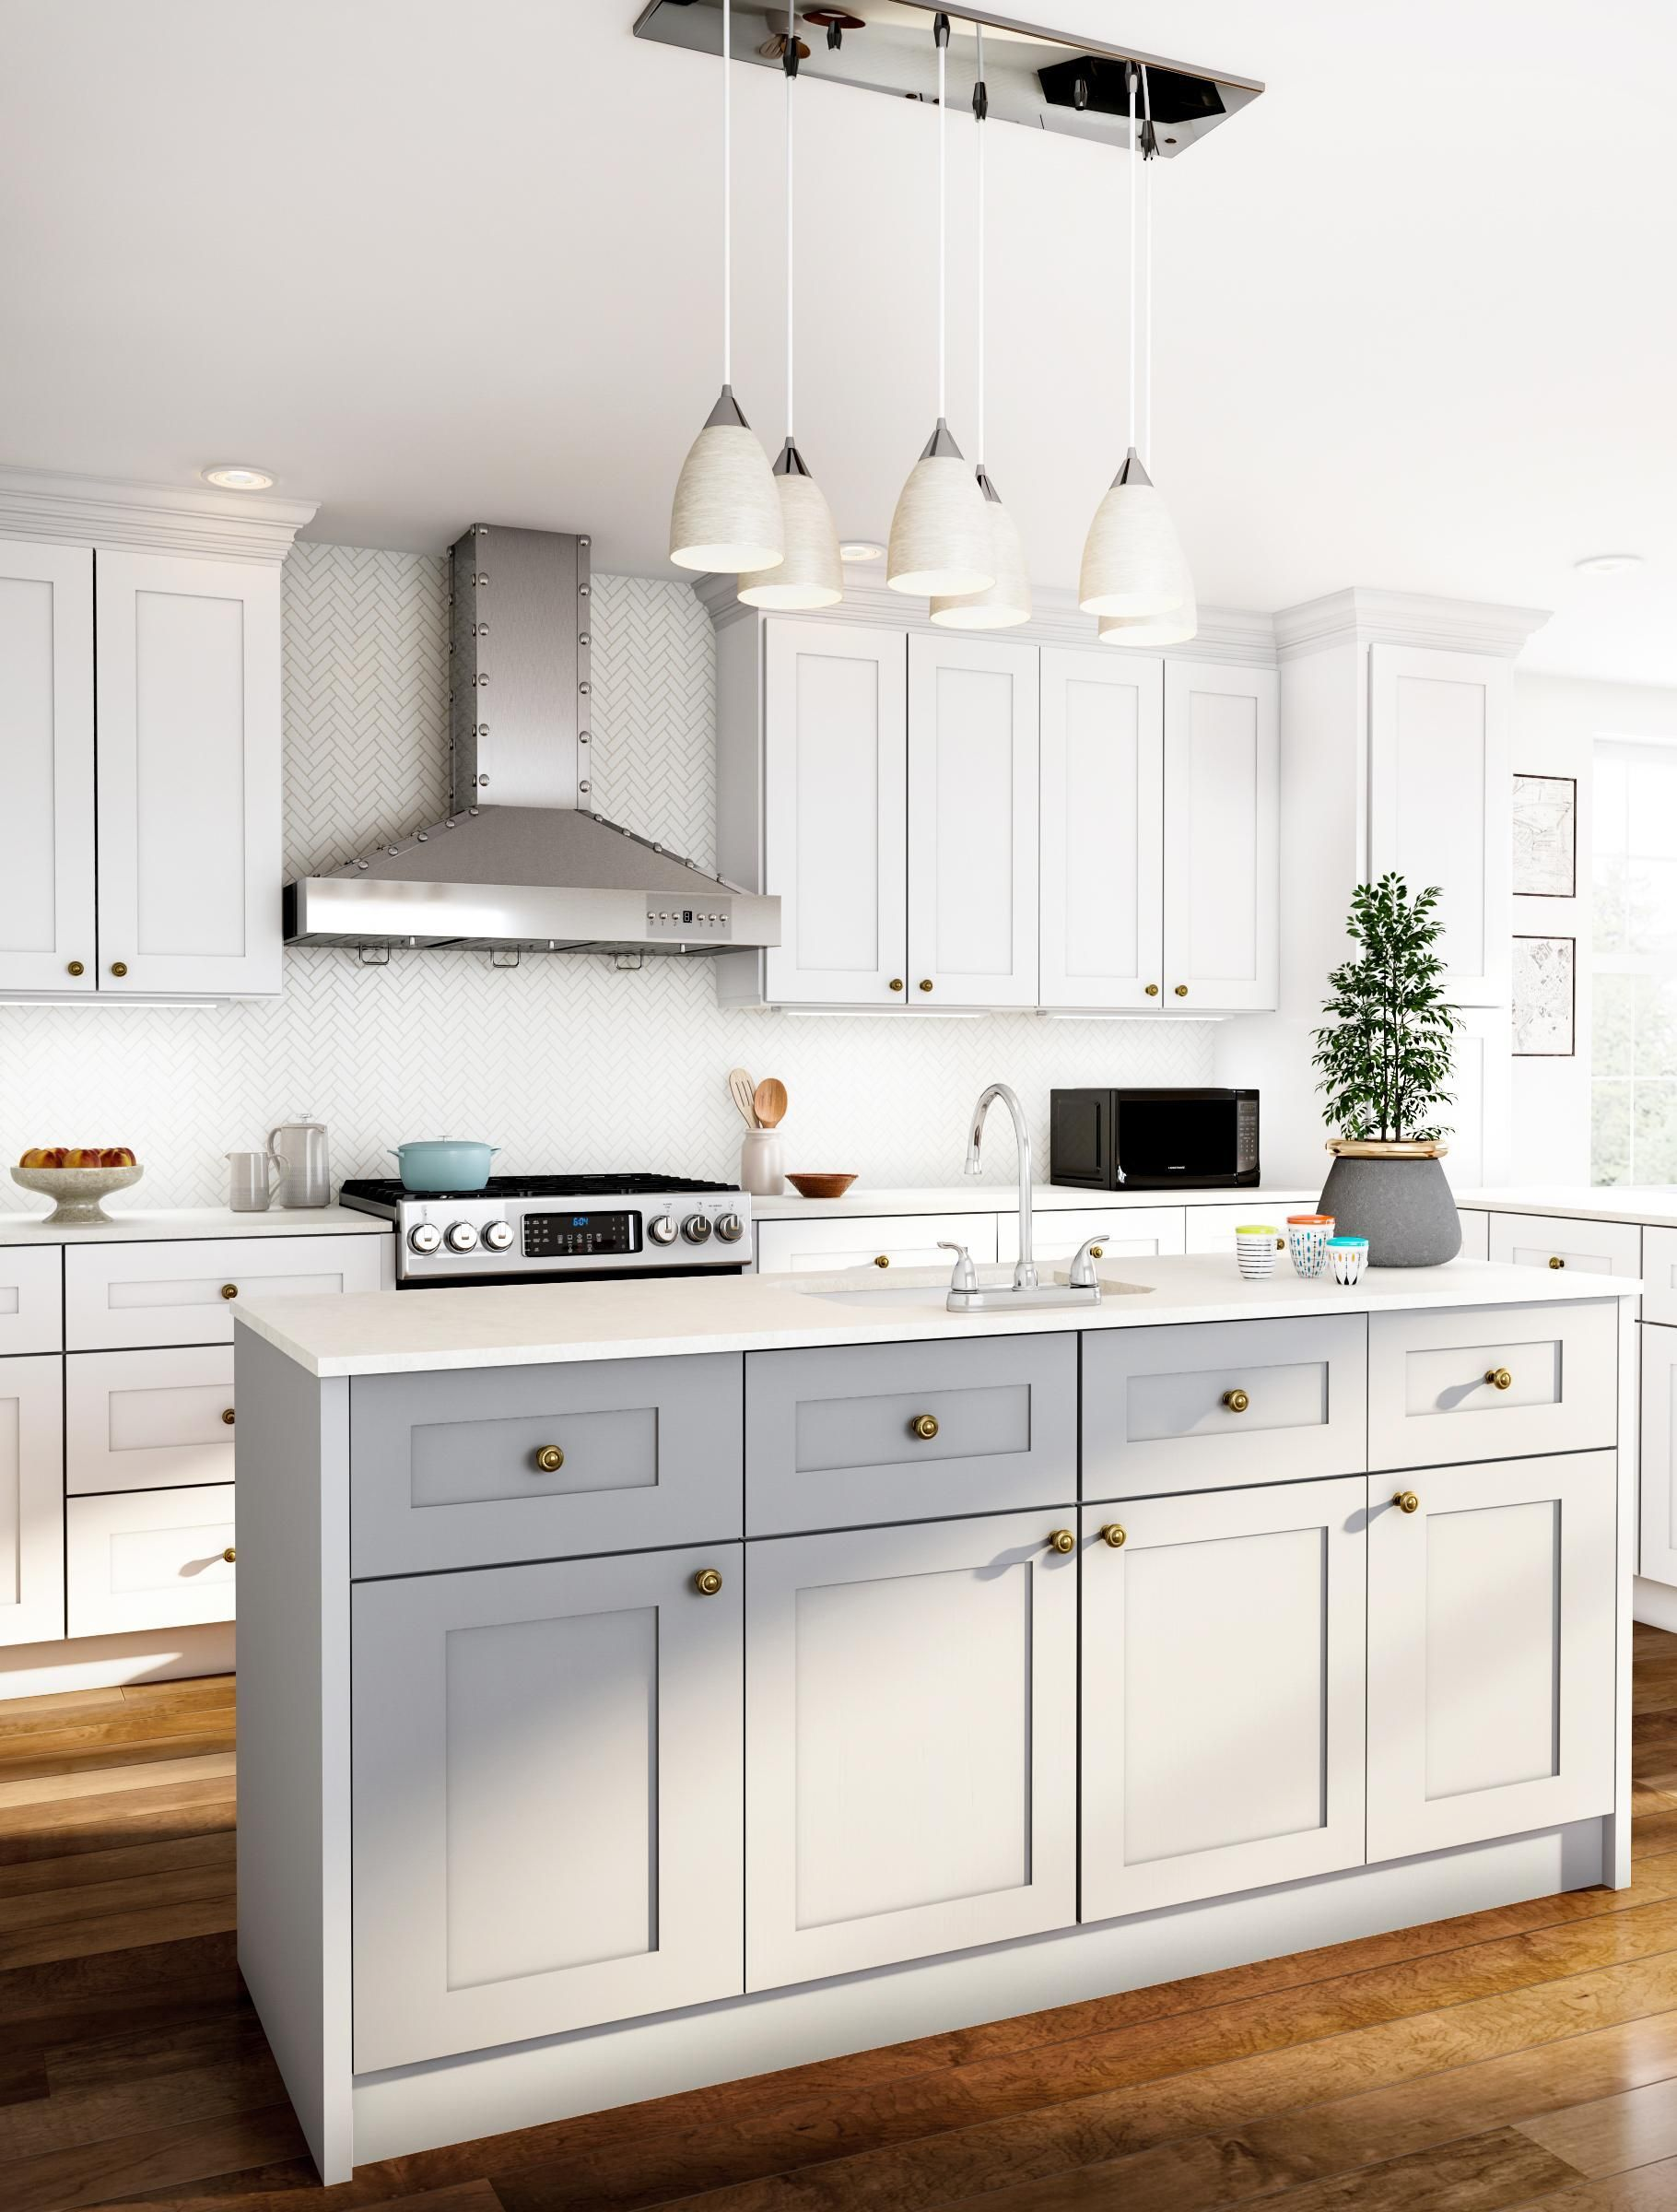 Kitchen Idea In London With Flat Panel Cabinets White Cabinets White Bac Kitchen Cabinet Remodel Interior Design Kitchen Interior Design Kitchen Contemporary